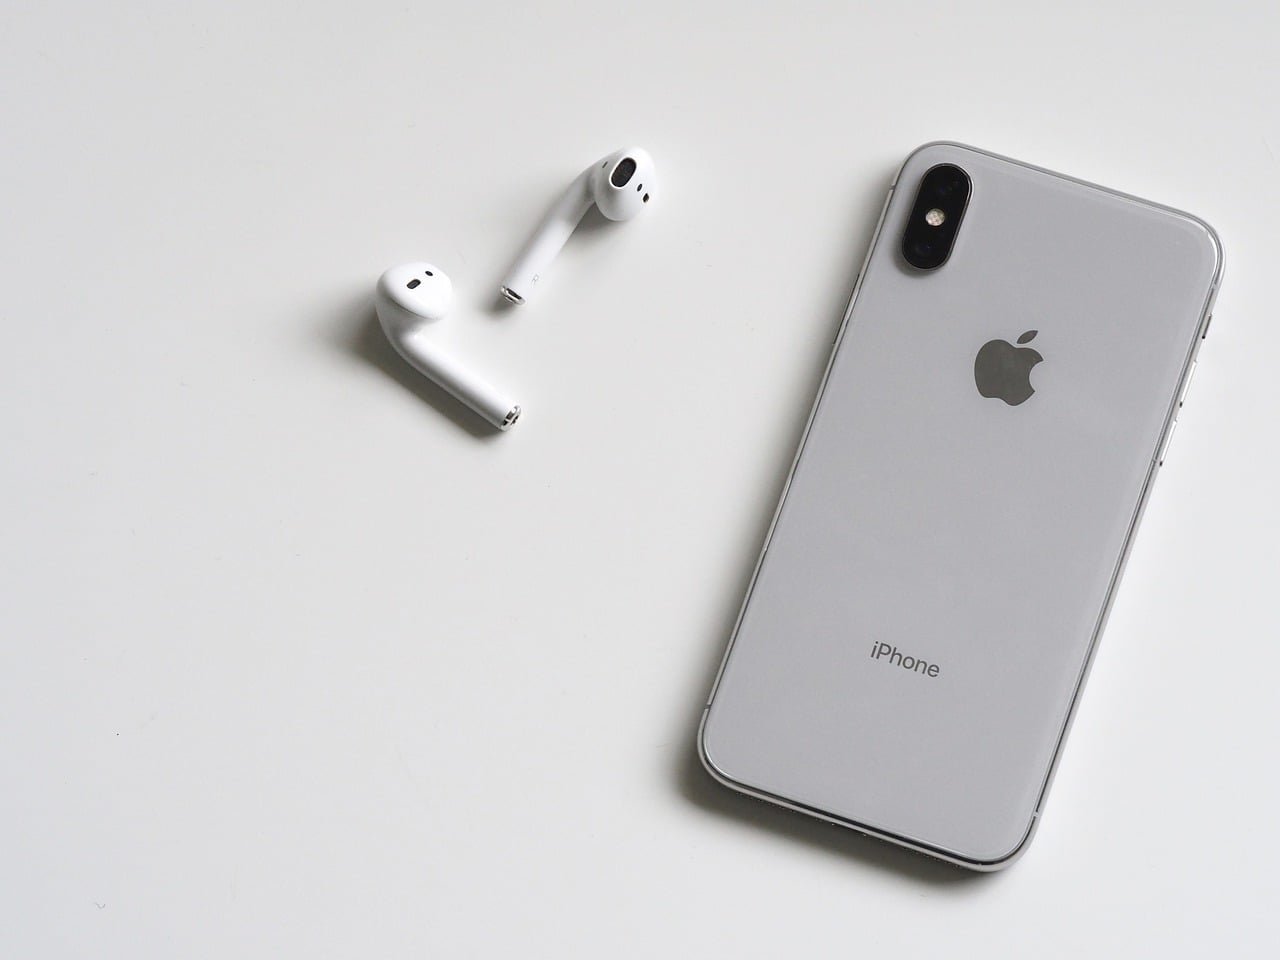 Engrave emoji on AirPods case